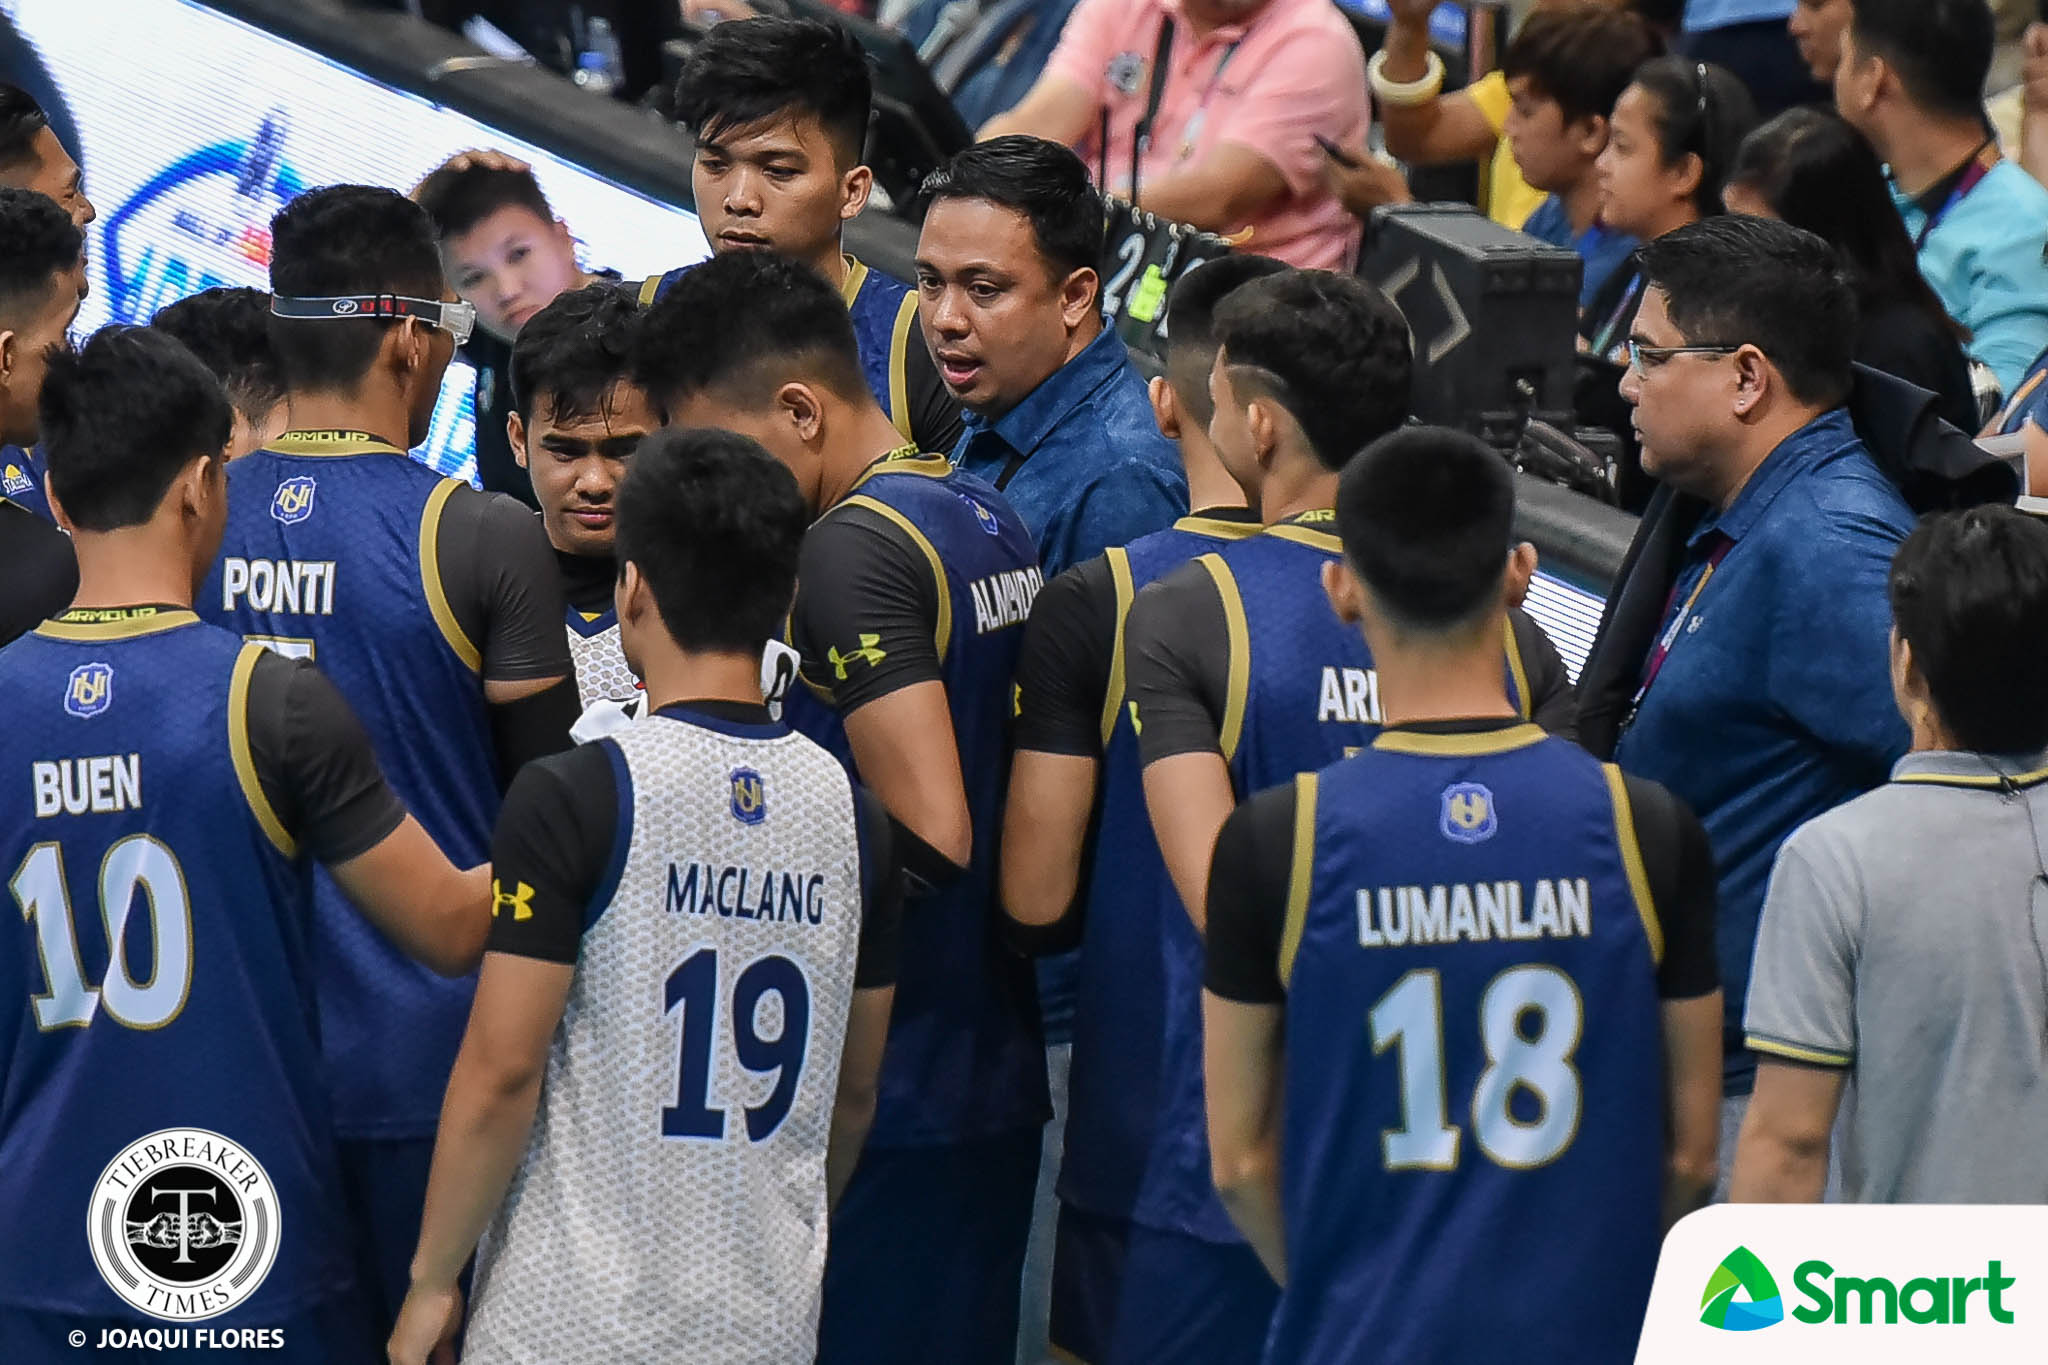 Tiebreaker Times Marcos confident NU can keep winning culture alive News NU UAAP Volleyball  uaap season 82 men's volleyball UAAP Season 82 Ricky Marcos NU Men's Volleyball